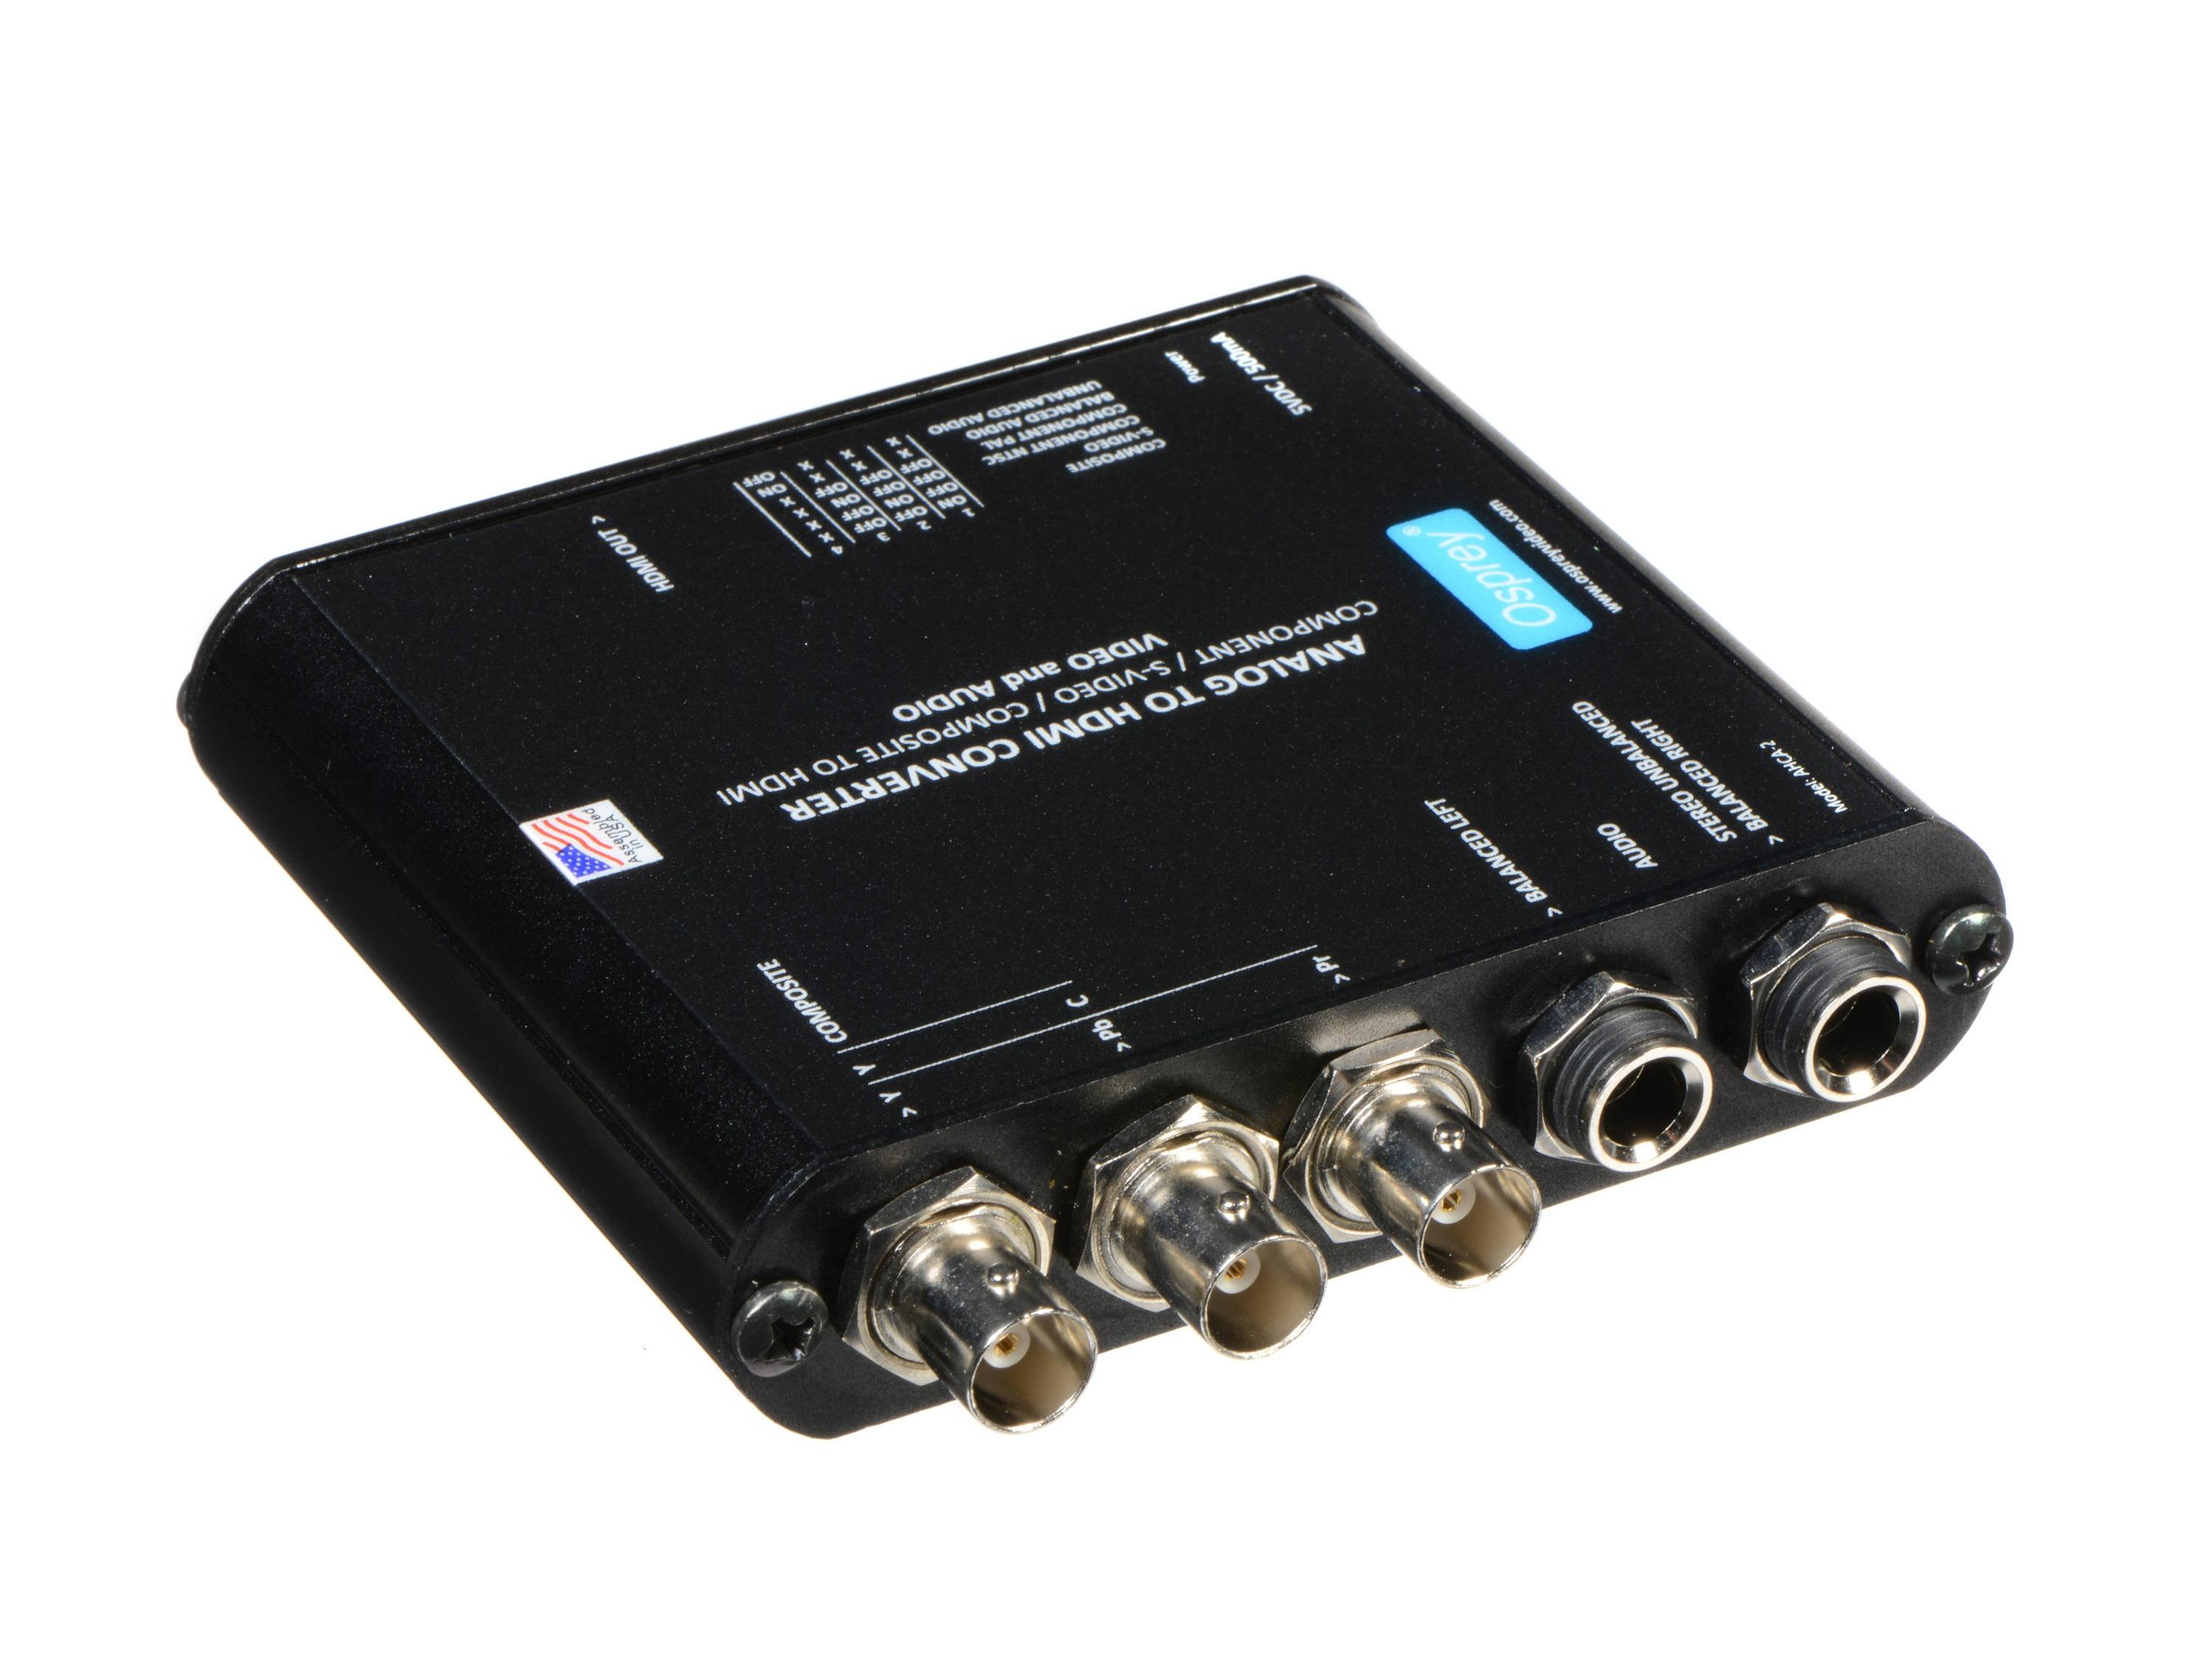 97-23211 Component/S-Video/Composite to HDMI AHCA-2 Converter with Audio Embedding by Osprey